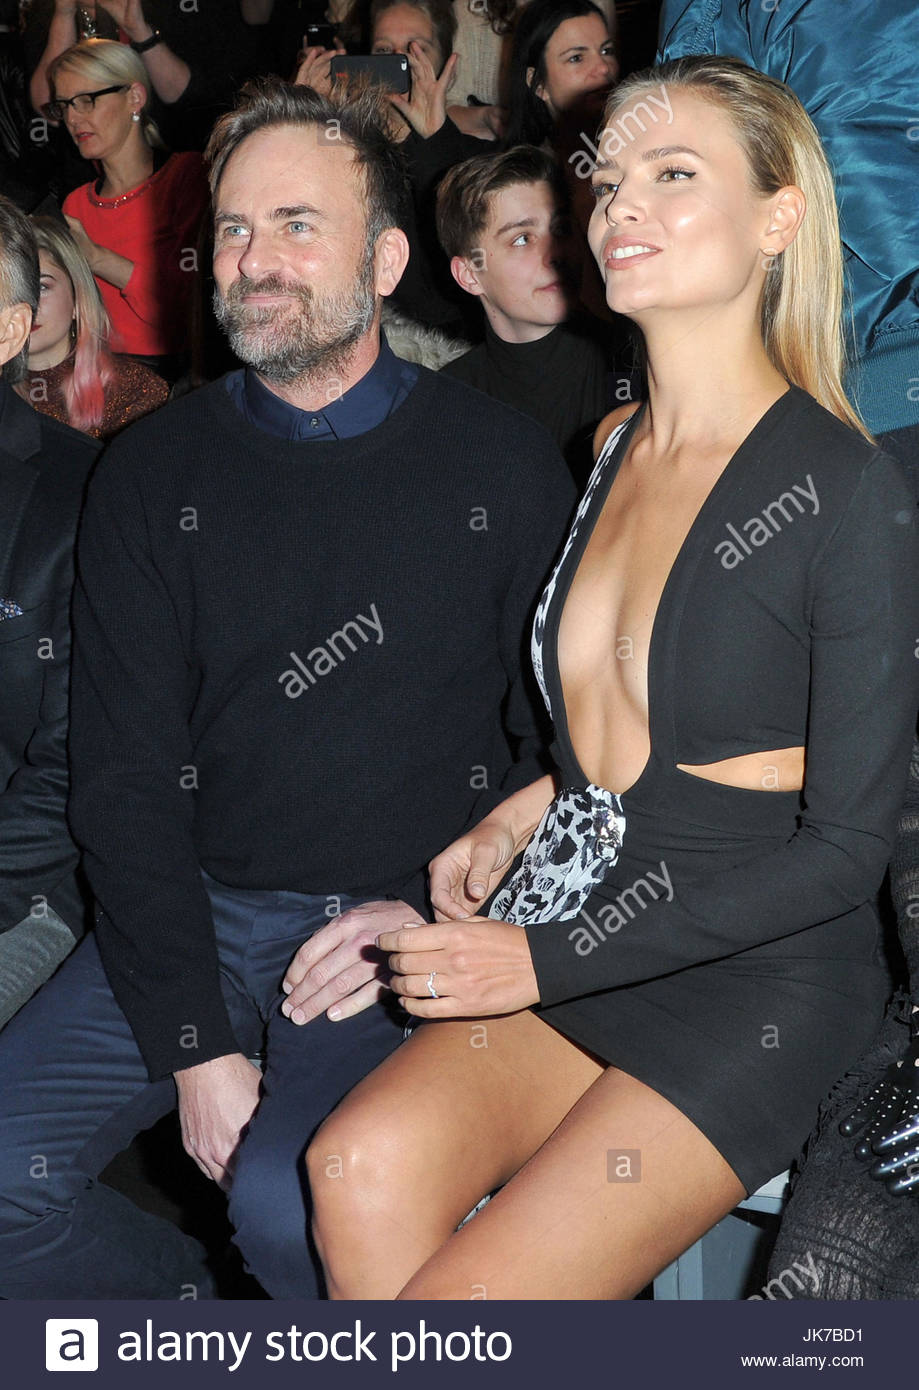 Celebrites Natasha Poly naked (75 foto and video), Pussy, Paparazzi, Selfie, cleavage 2006